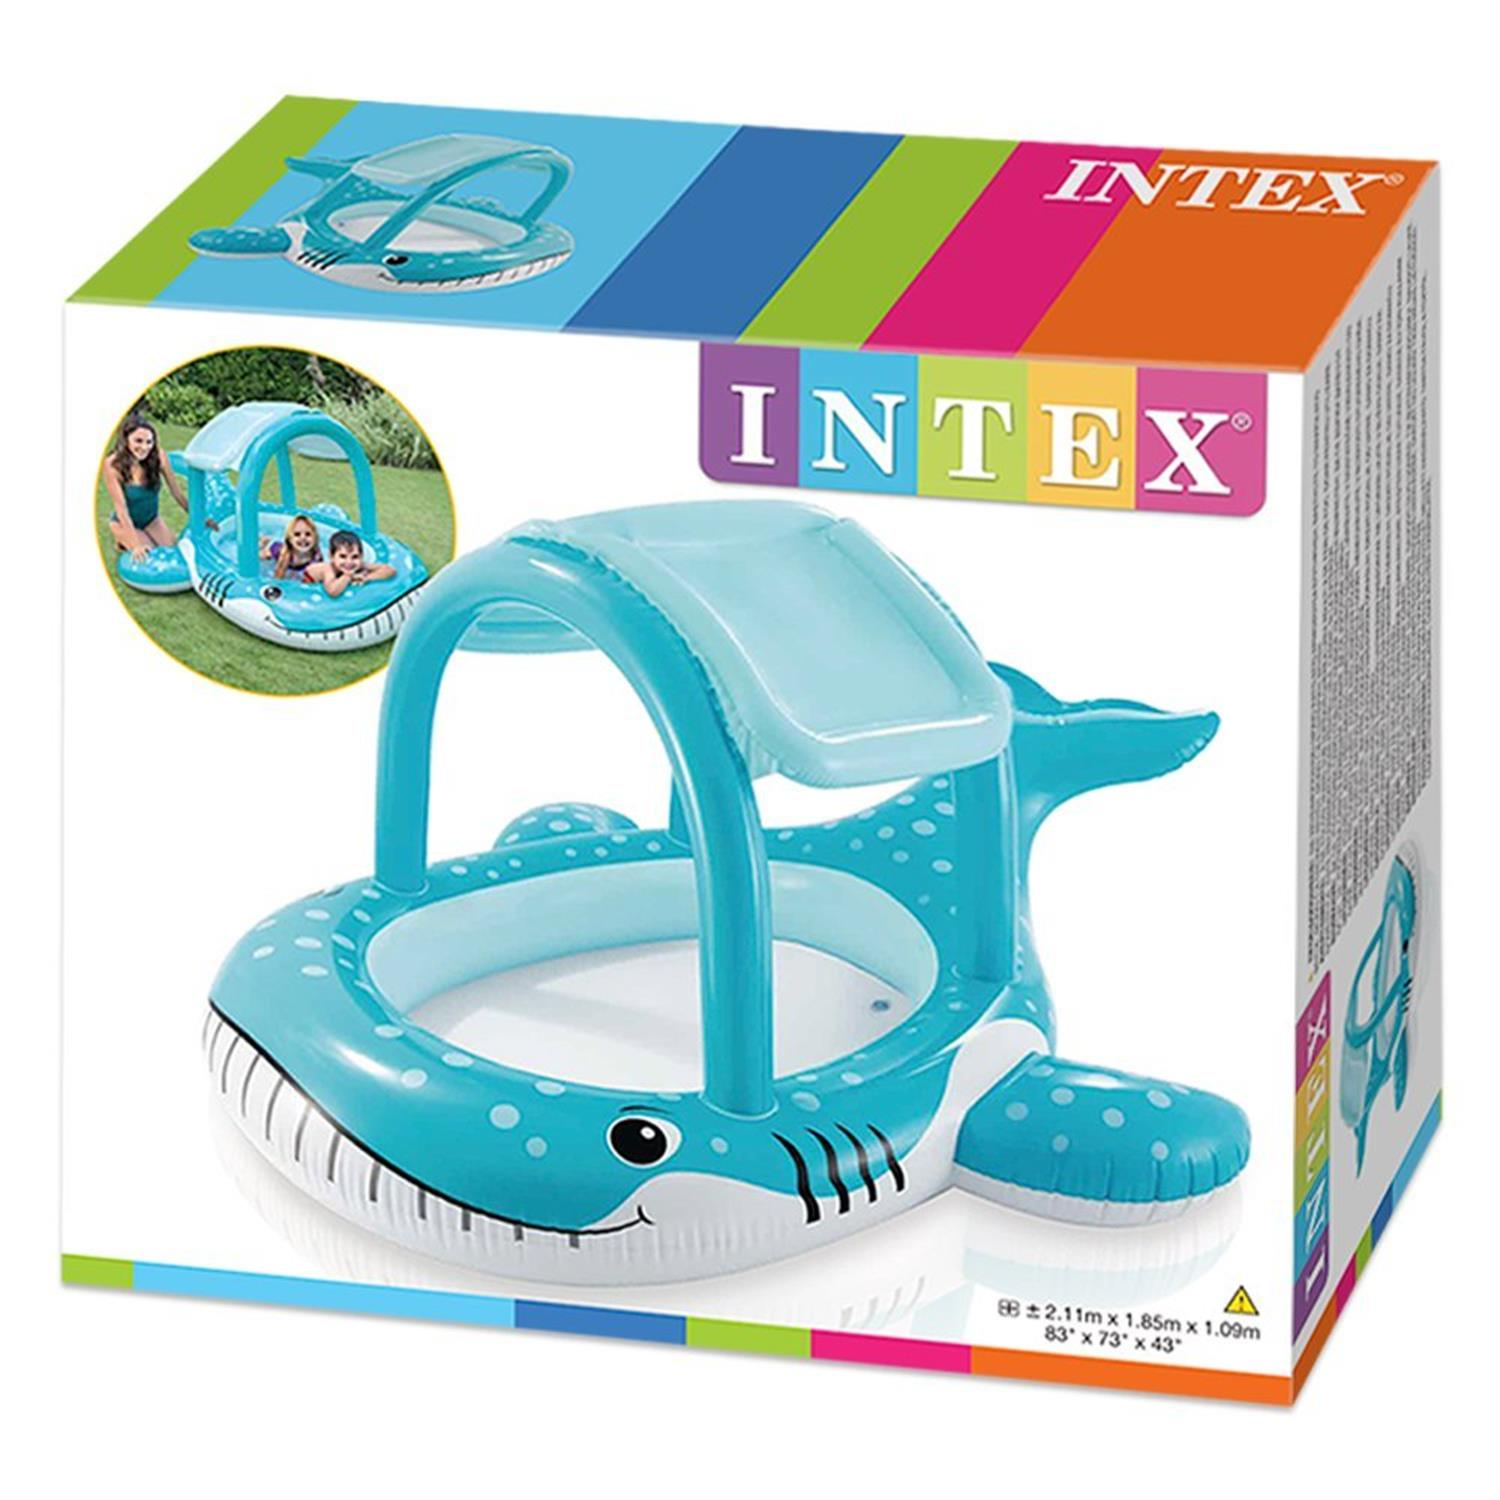 Intex 57125np baby pool shade pool wal - Playmobil piscina ballena ...